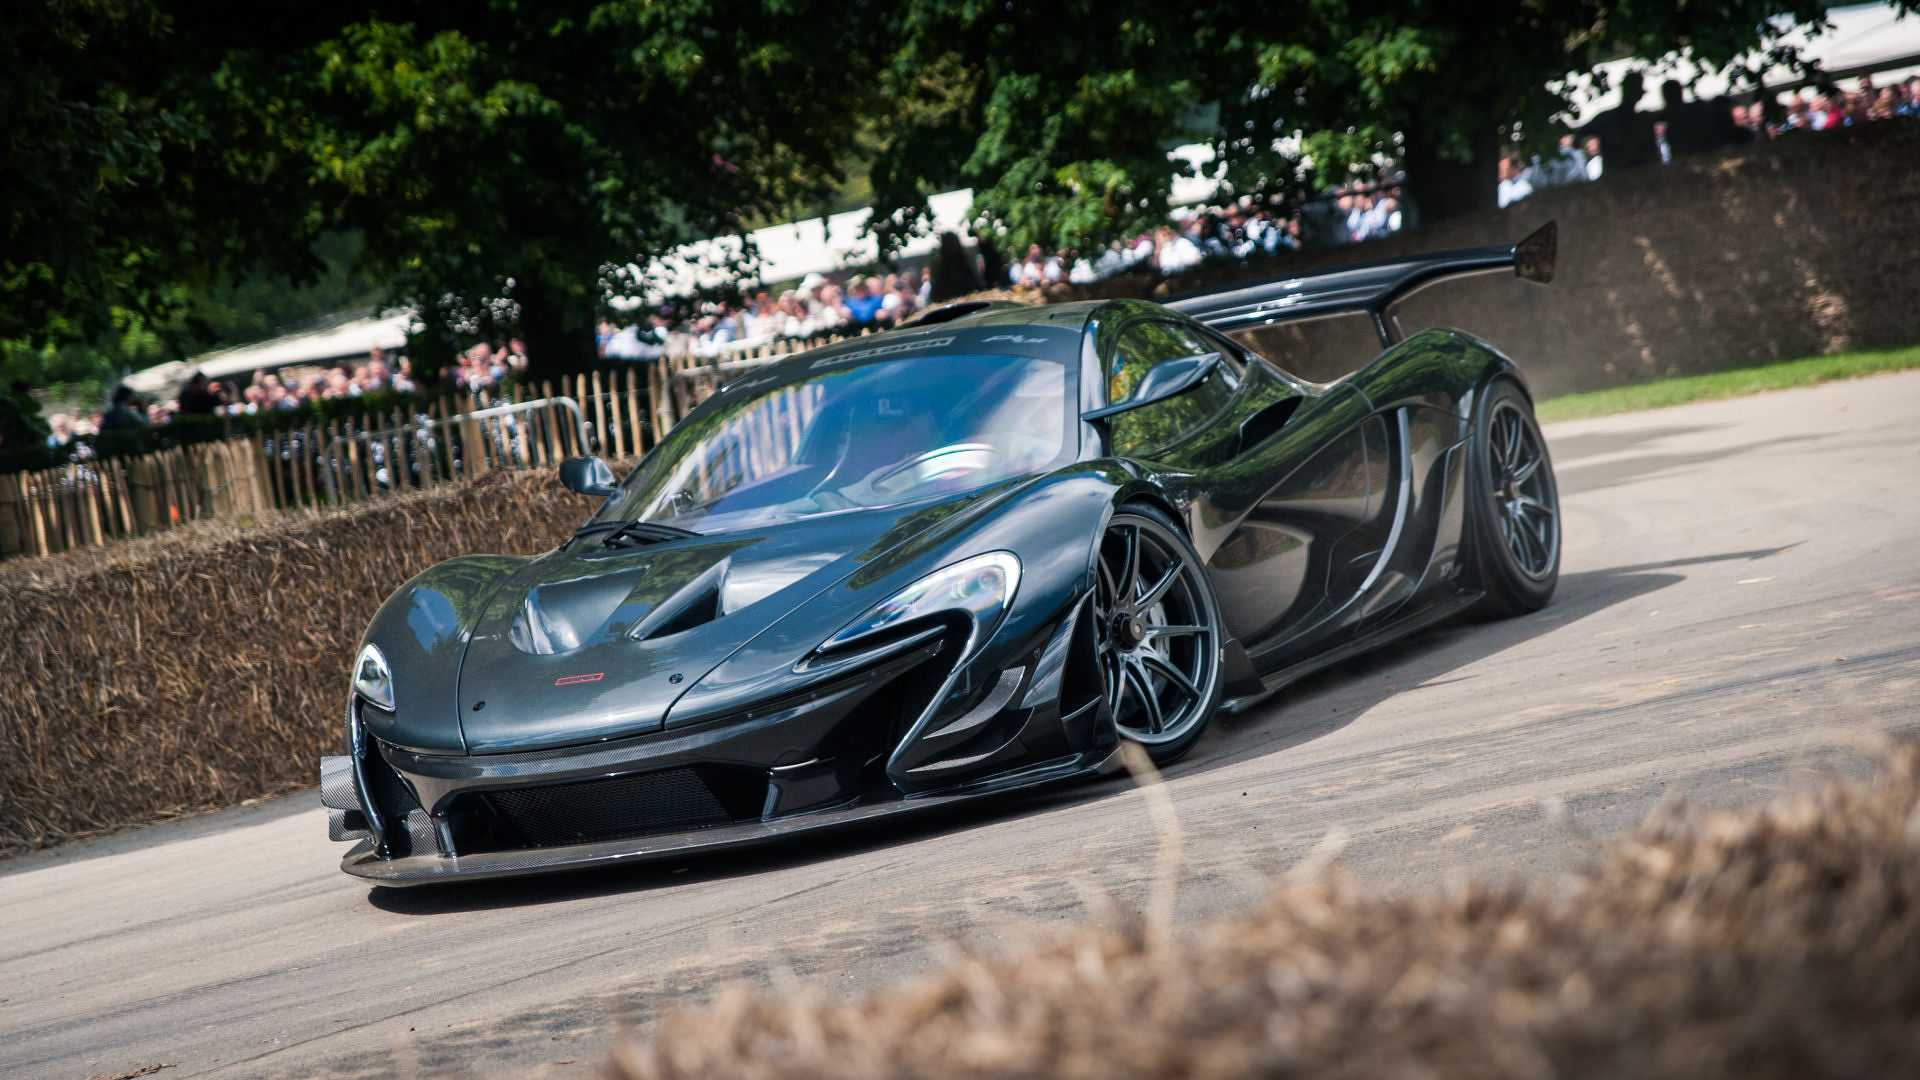 See McLaren P1 LM Set Goodwood Record From Driver's View